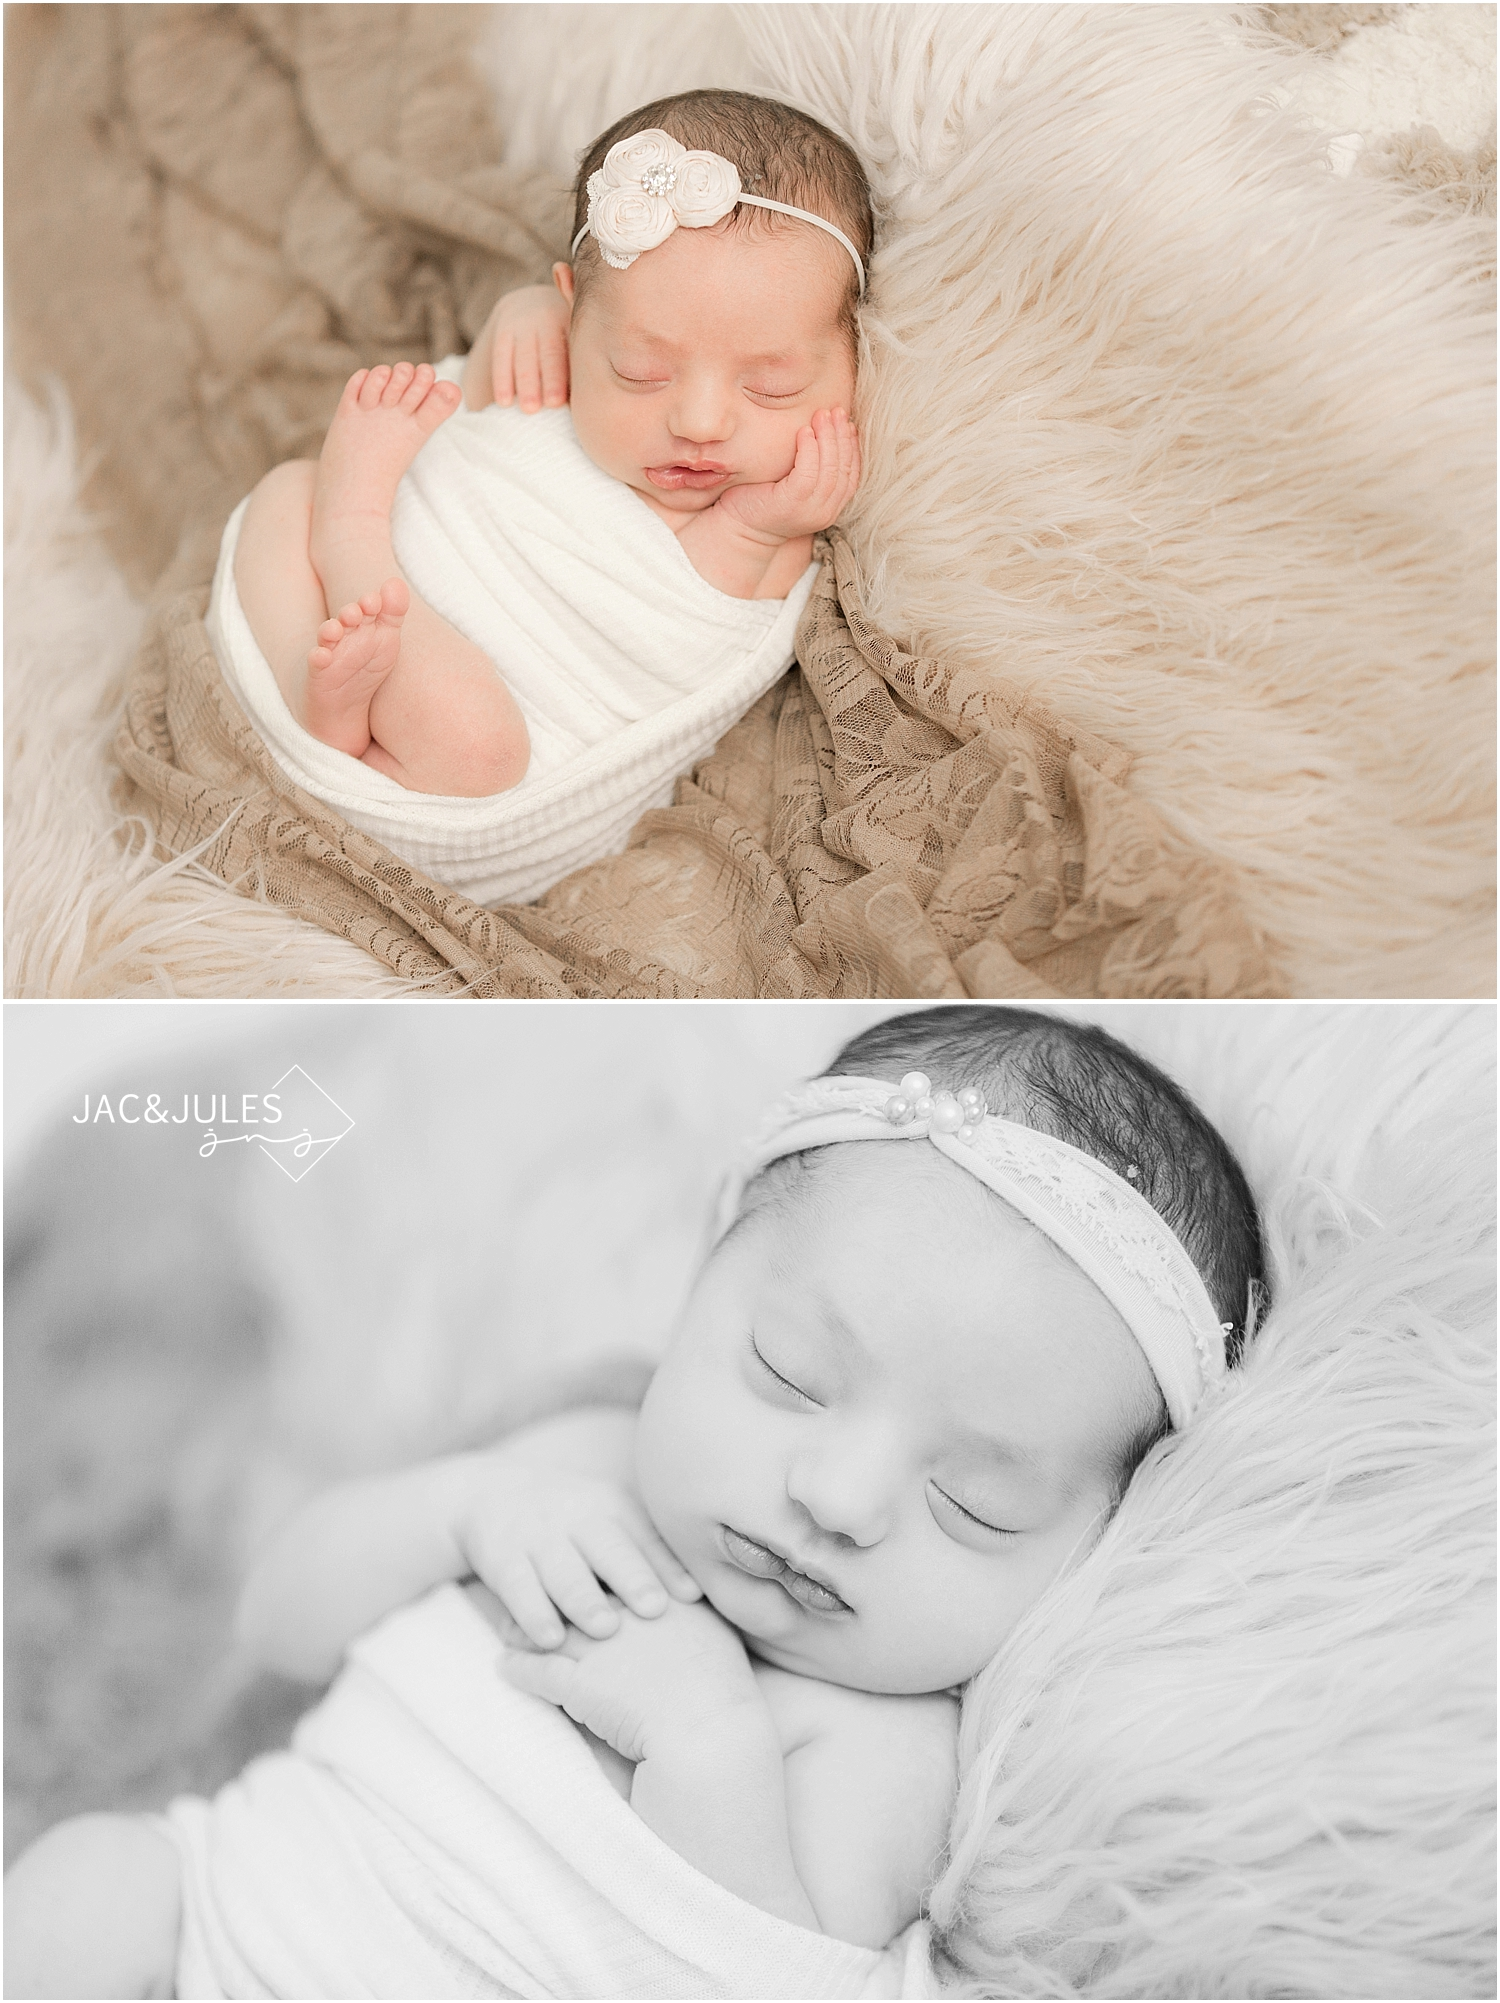 jacnjules photographs natural newborn baby girl in her home in Middletown, NJ